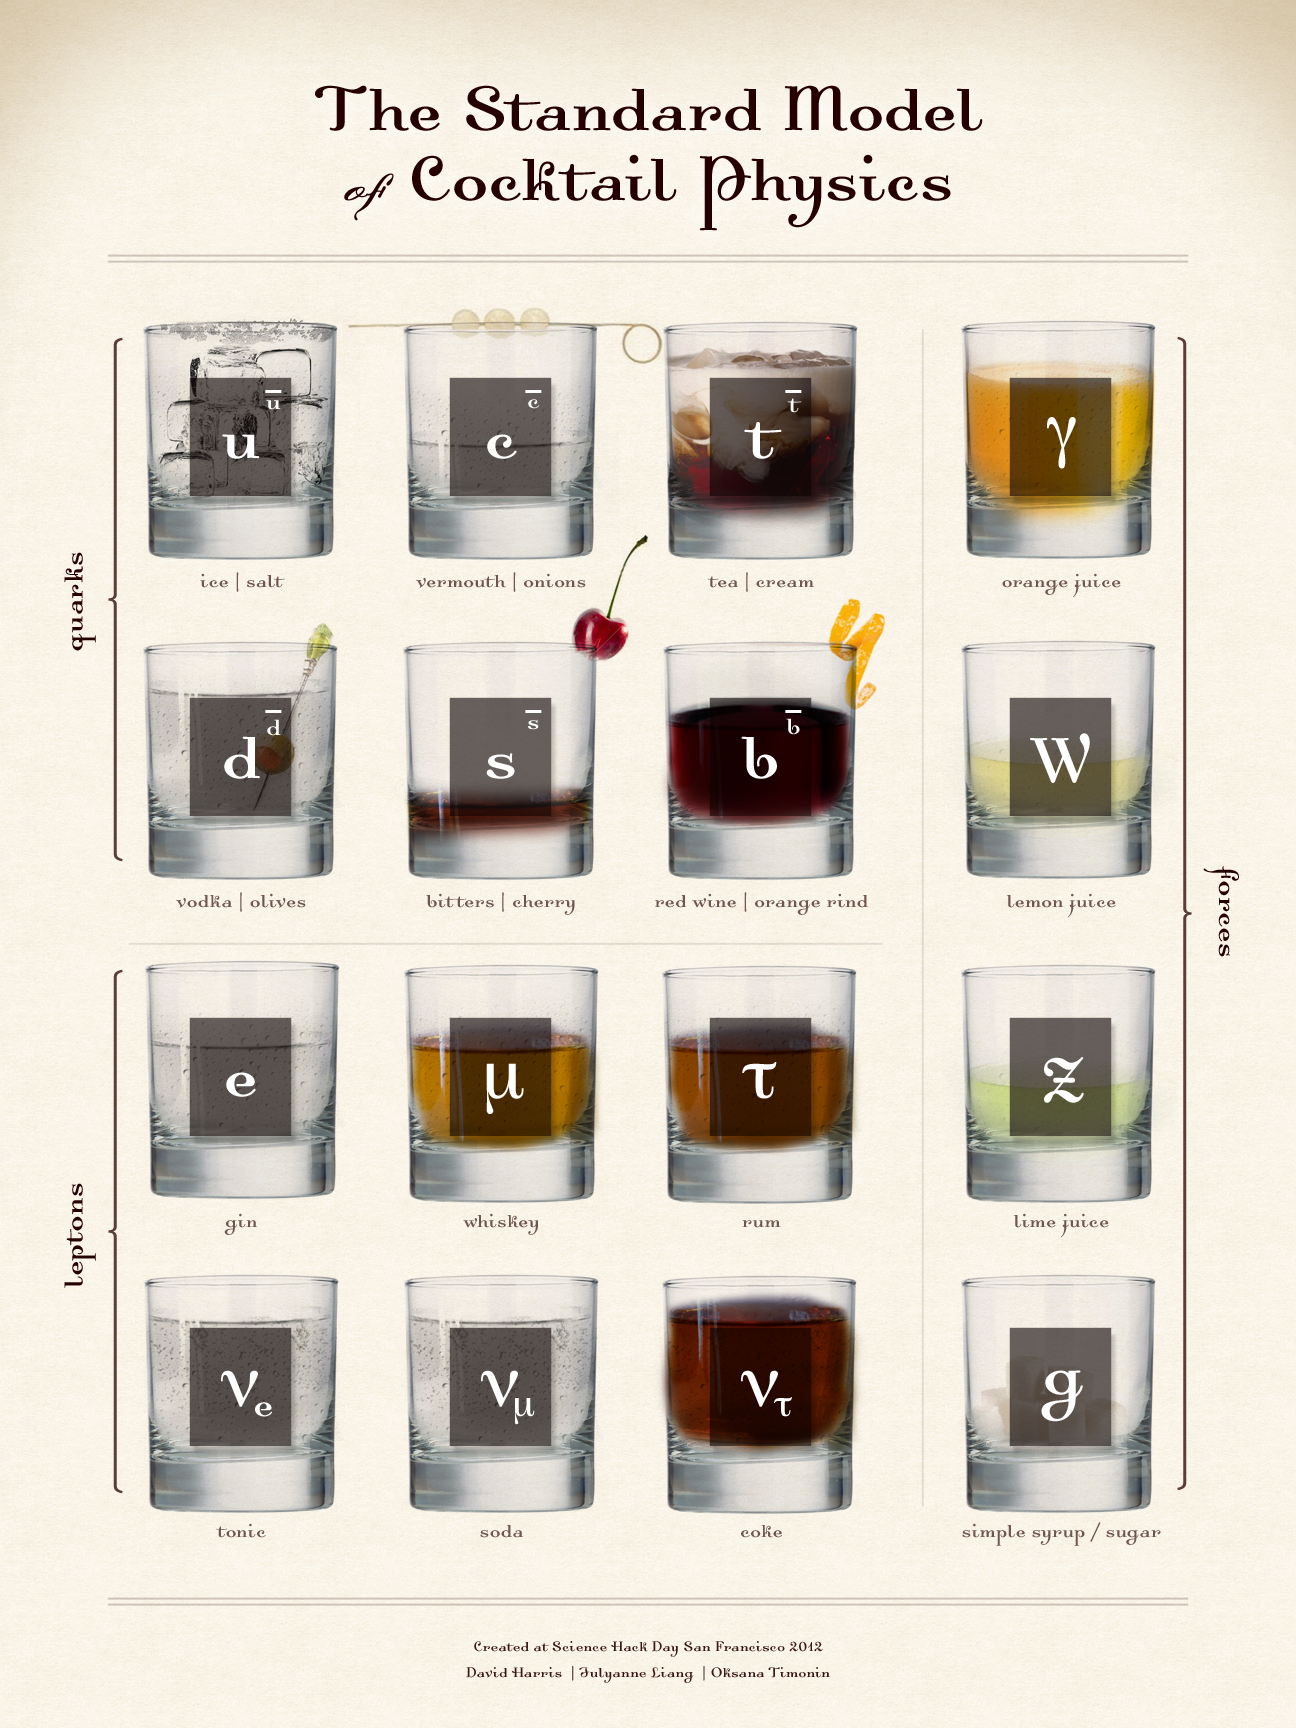 Standard Model of Cocktail Physics (2012)